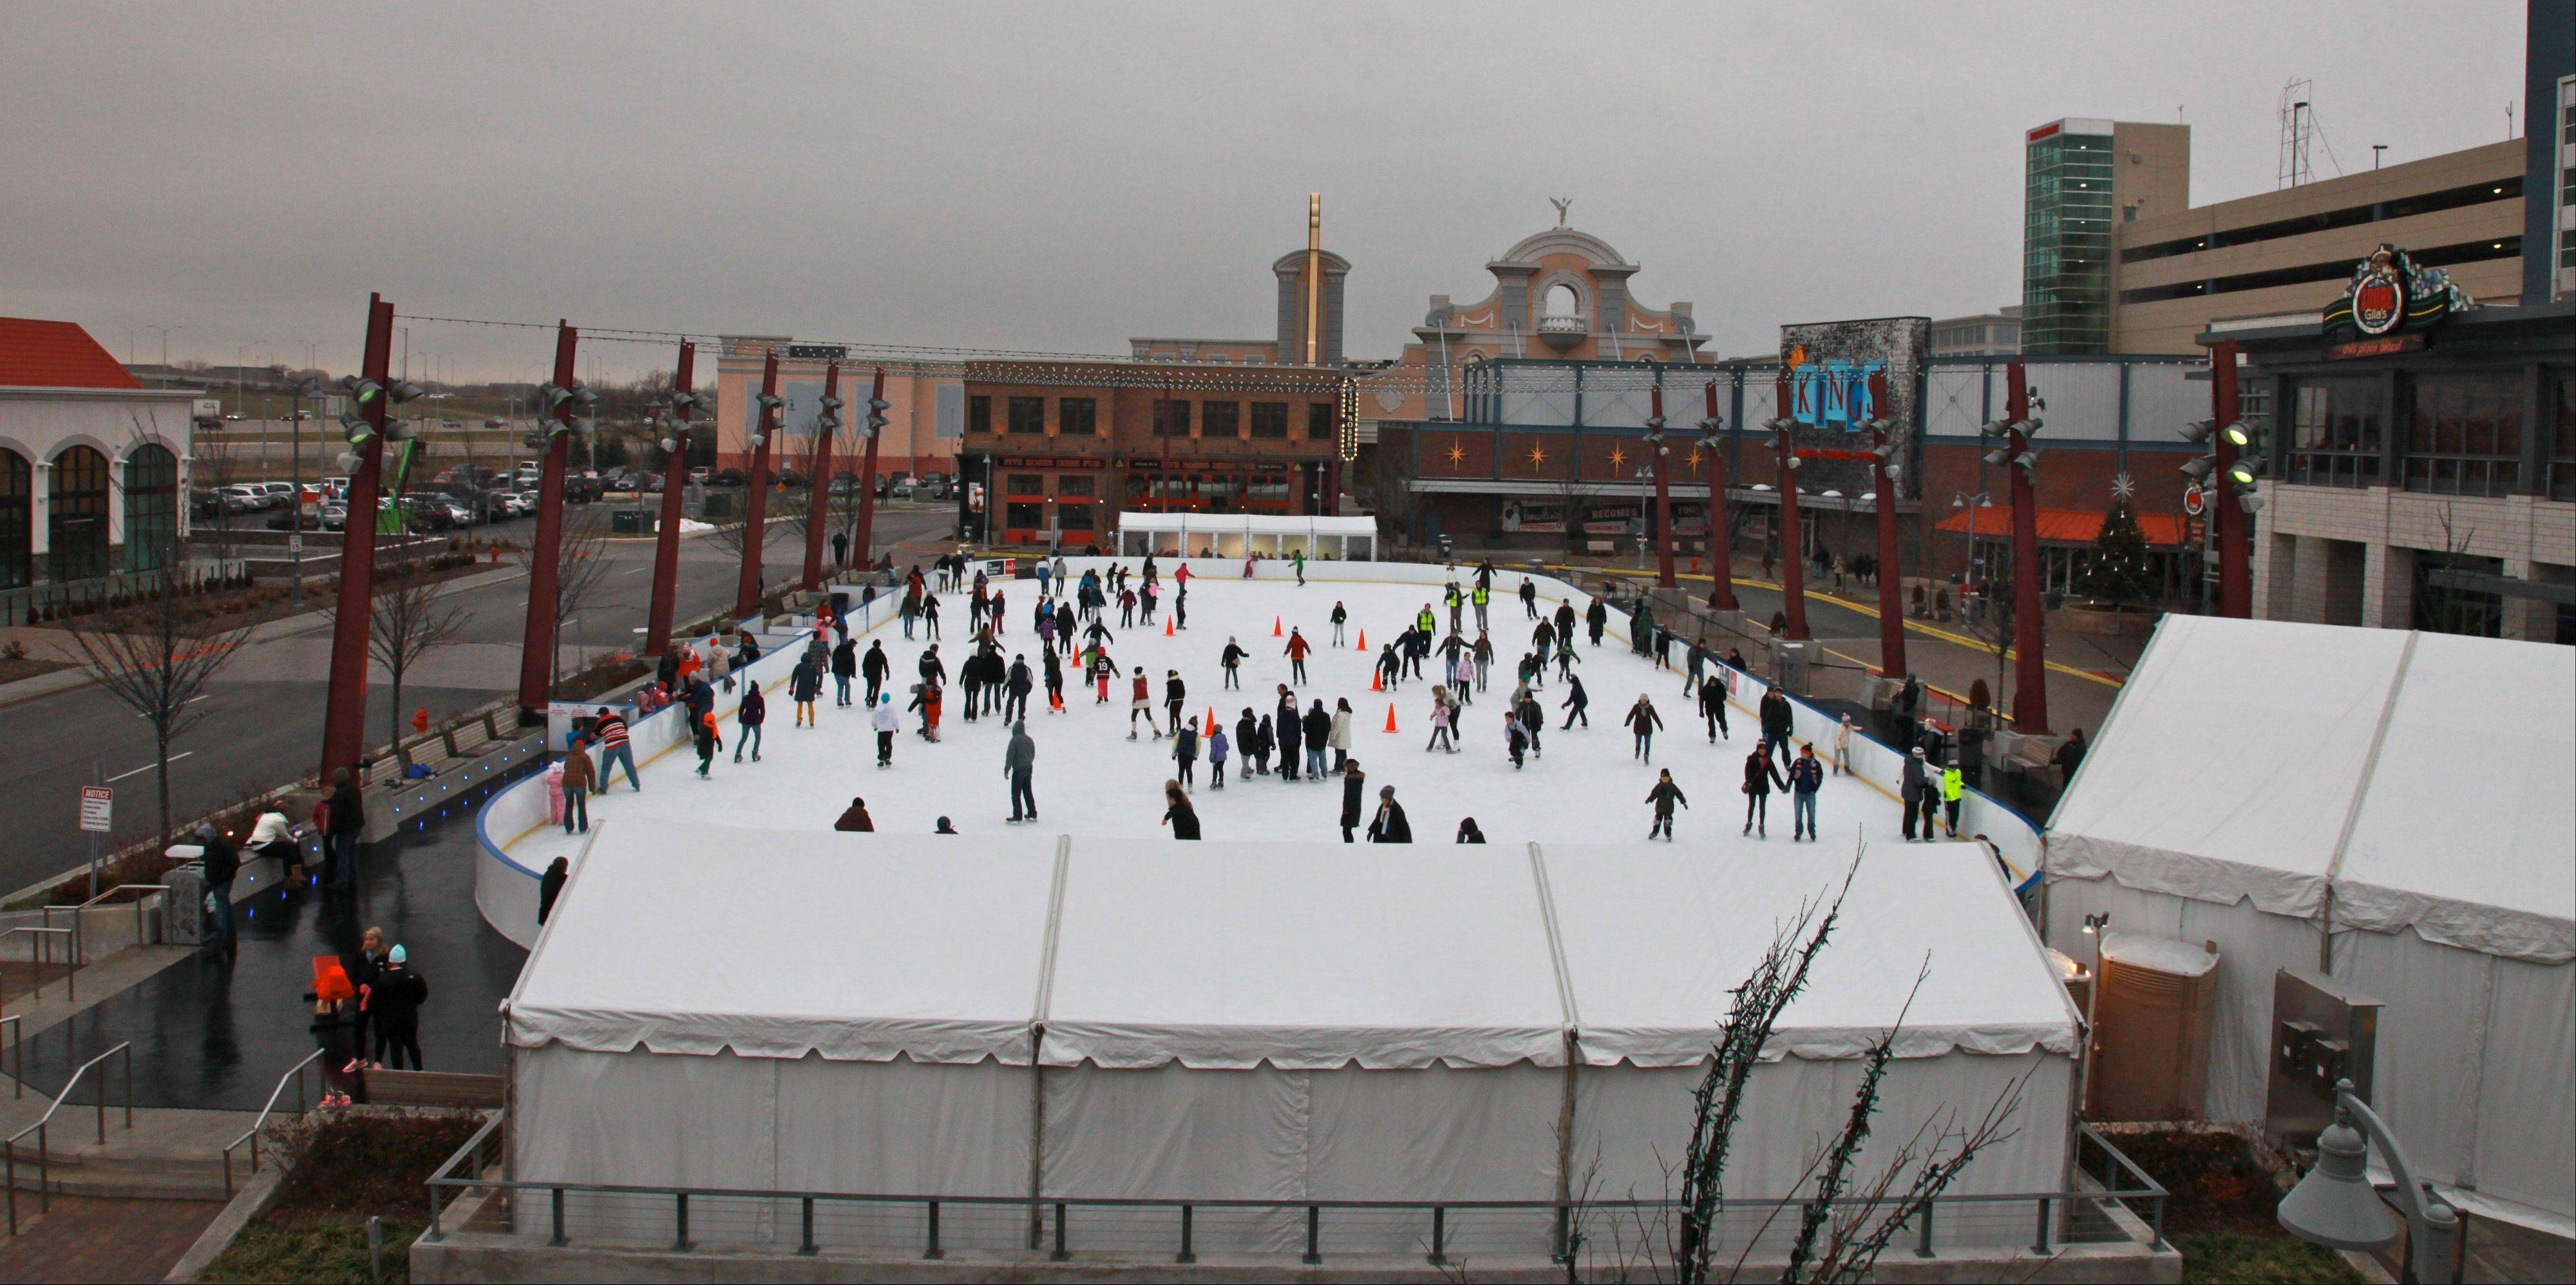 Outdoor hockey coming to Rosemont's ice rink